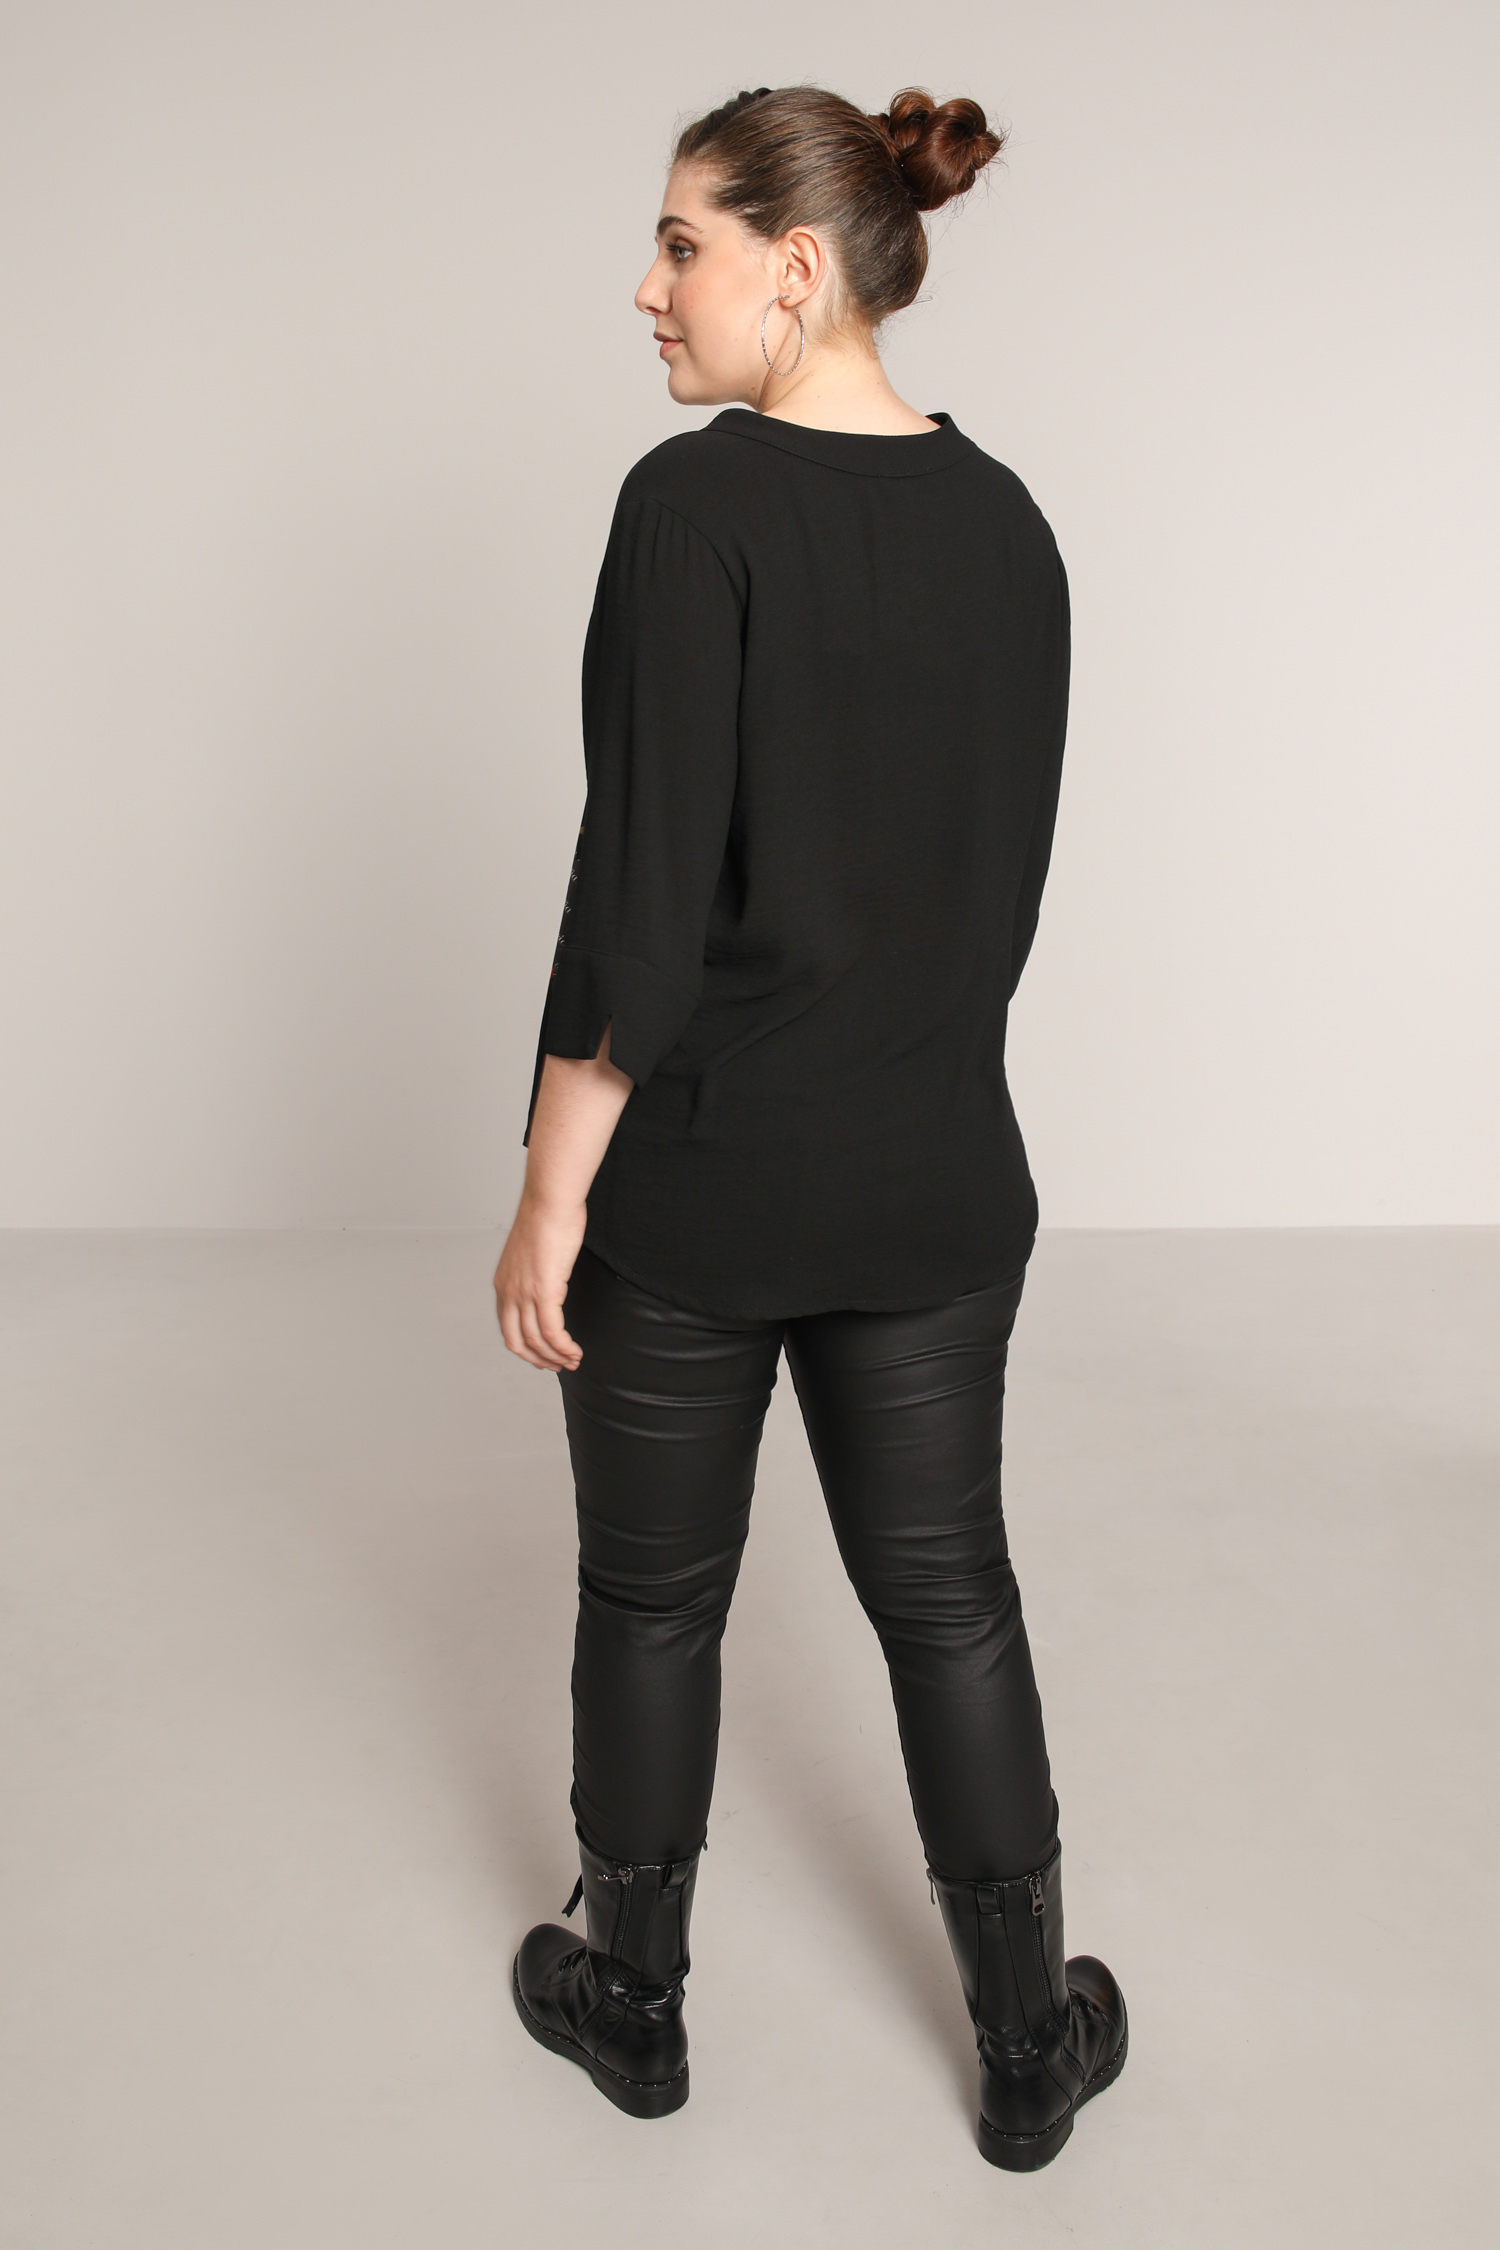 Buttoned blouse with placed design